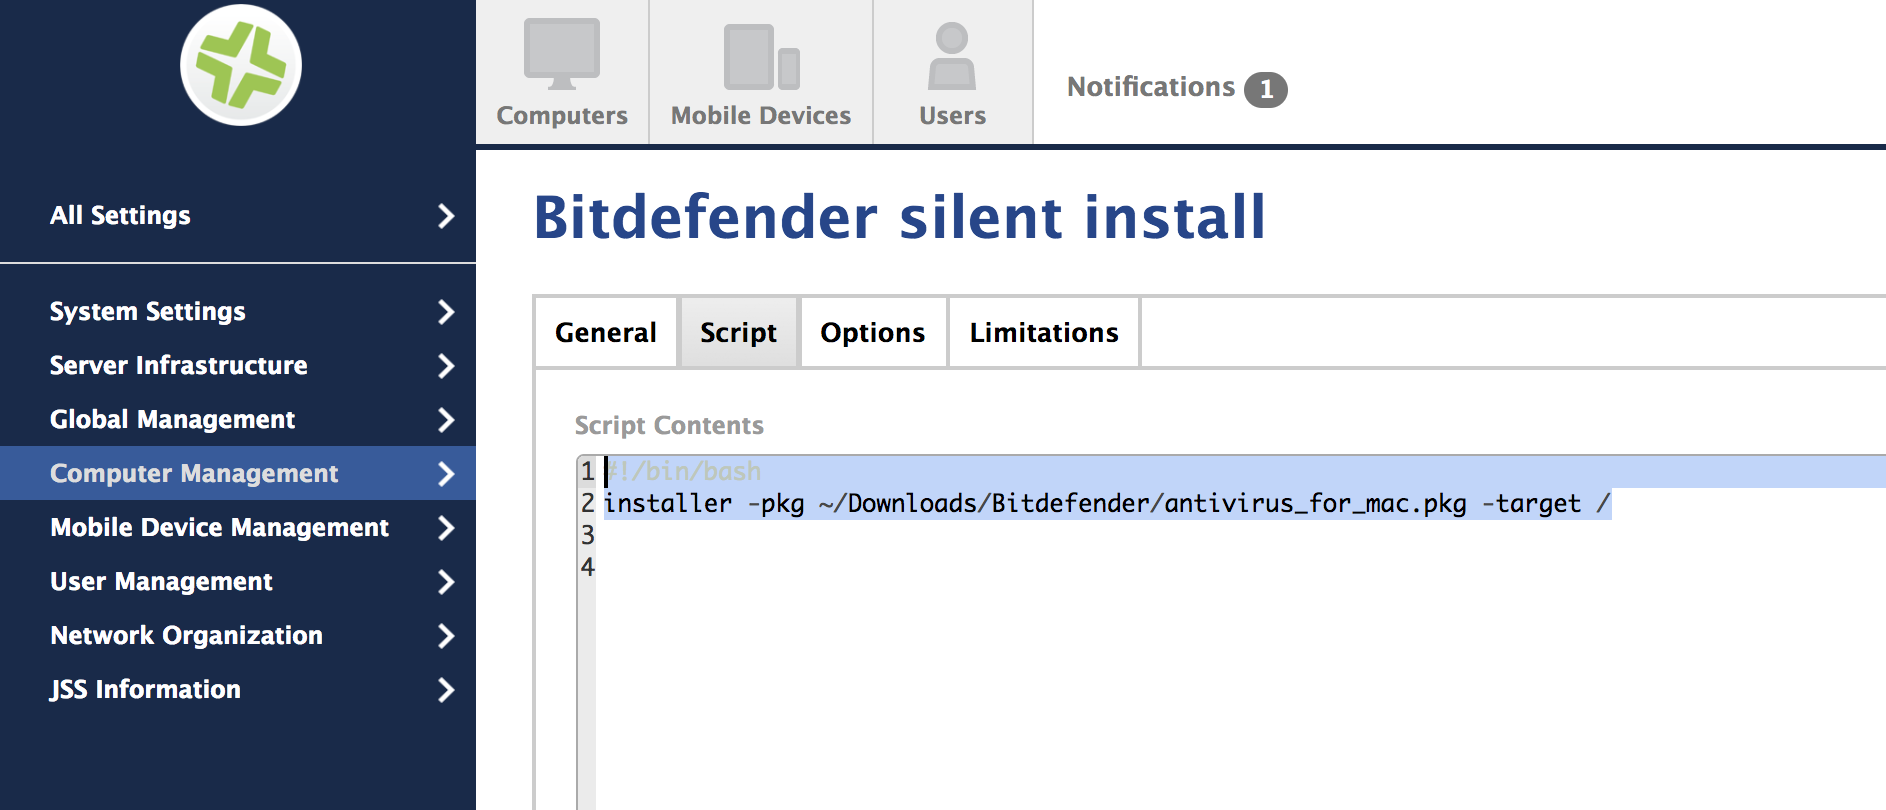 How to install Bitdefender Endpoint Security for Mac through Jamf